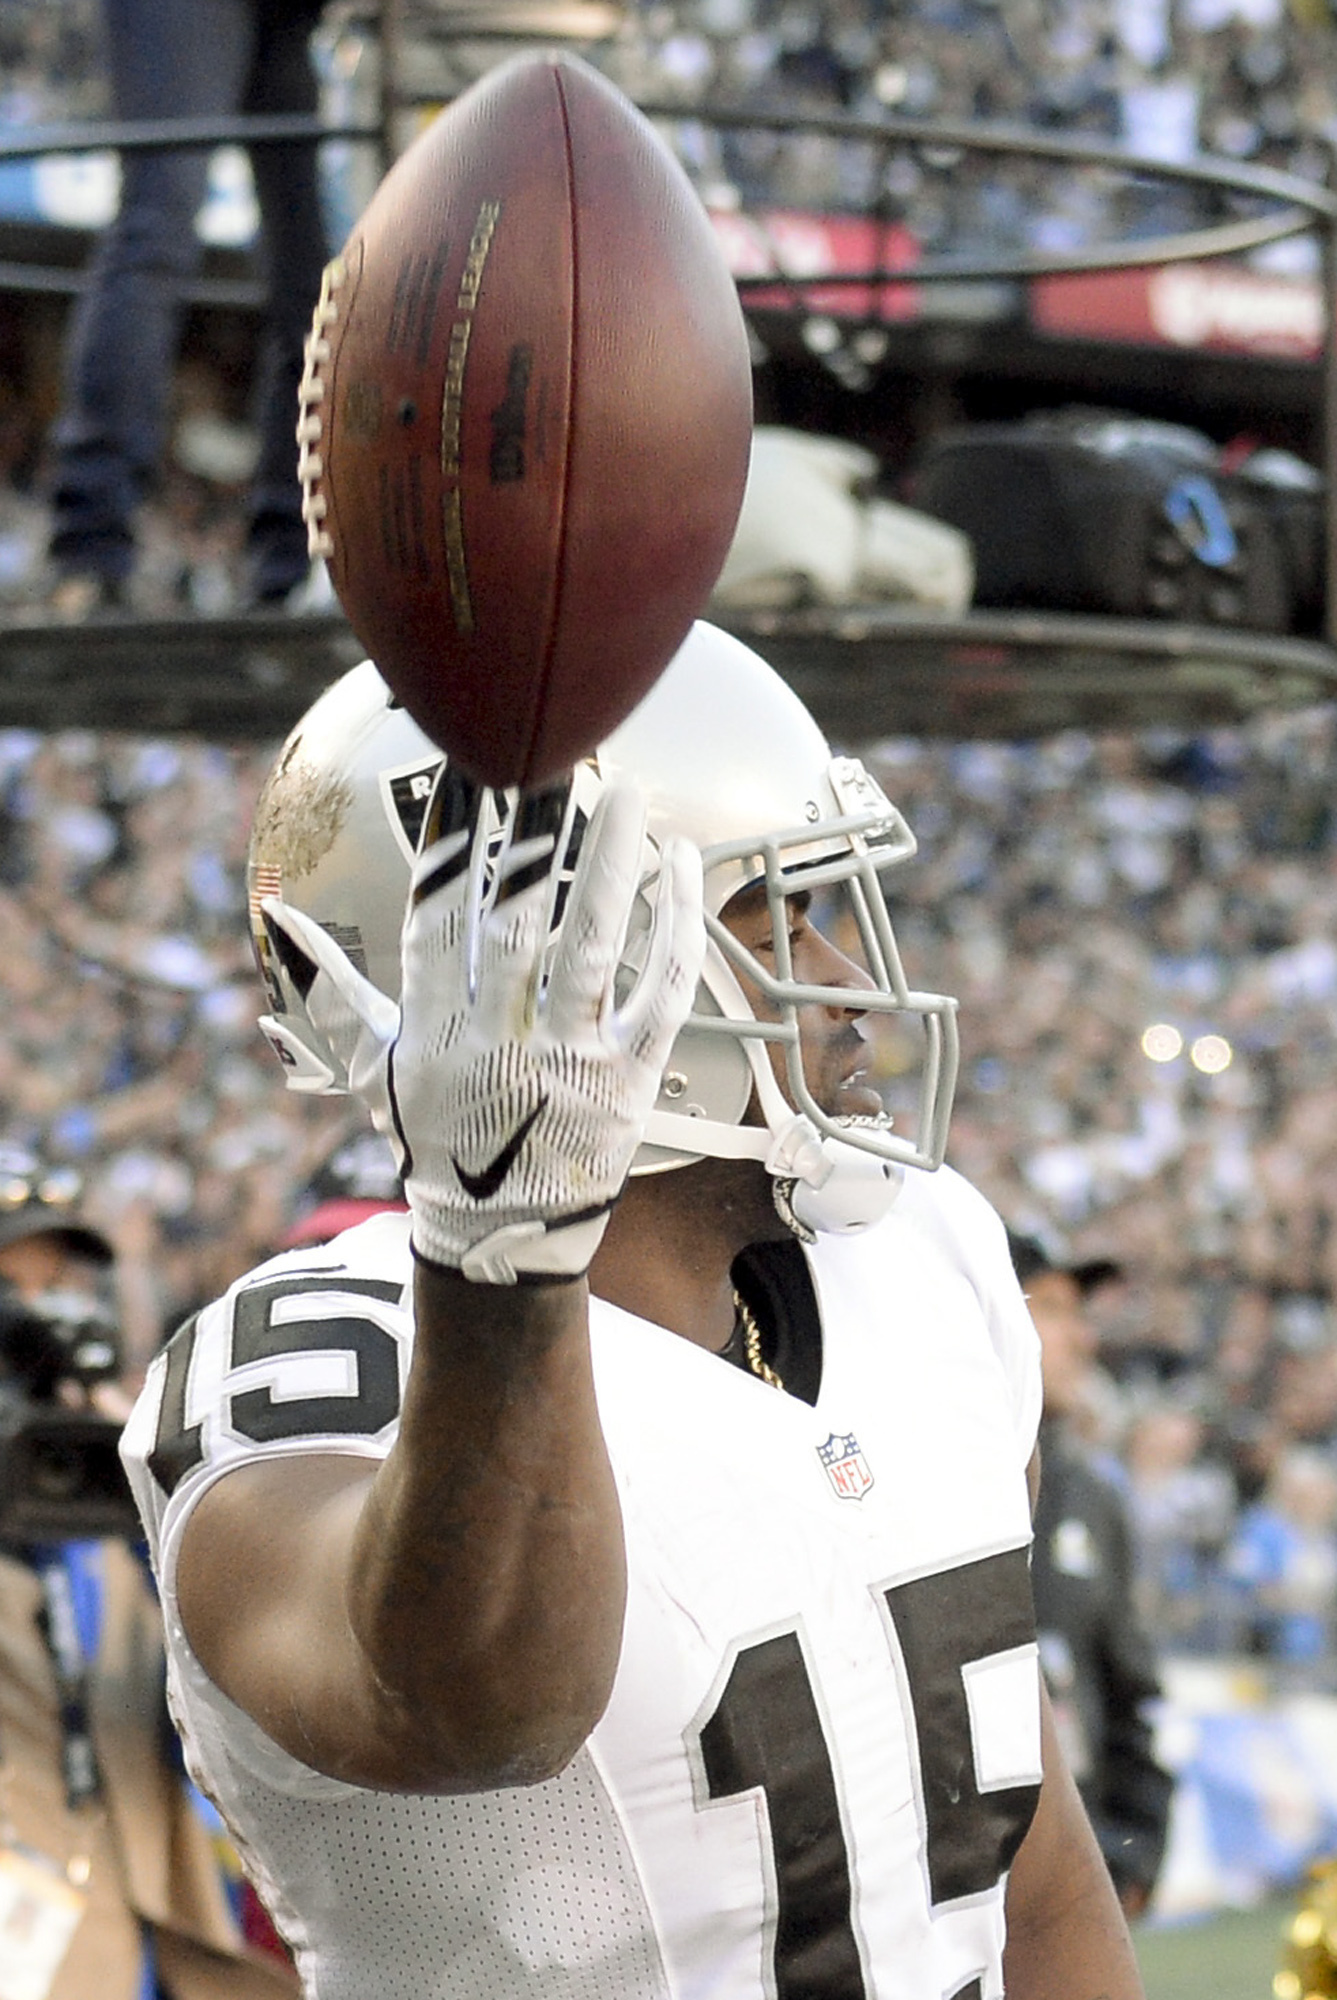 Oakland Raiders wide receiver Michael Crabtree reacts after scoring a touchdown during the first half of an NFL football game against the San Diego Chargers Sunday, Dec. 18, 2016, in San Diego. (AP Photo/Denis Poroy)